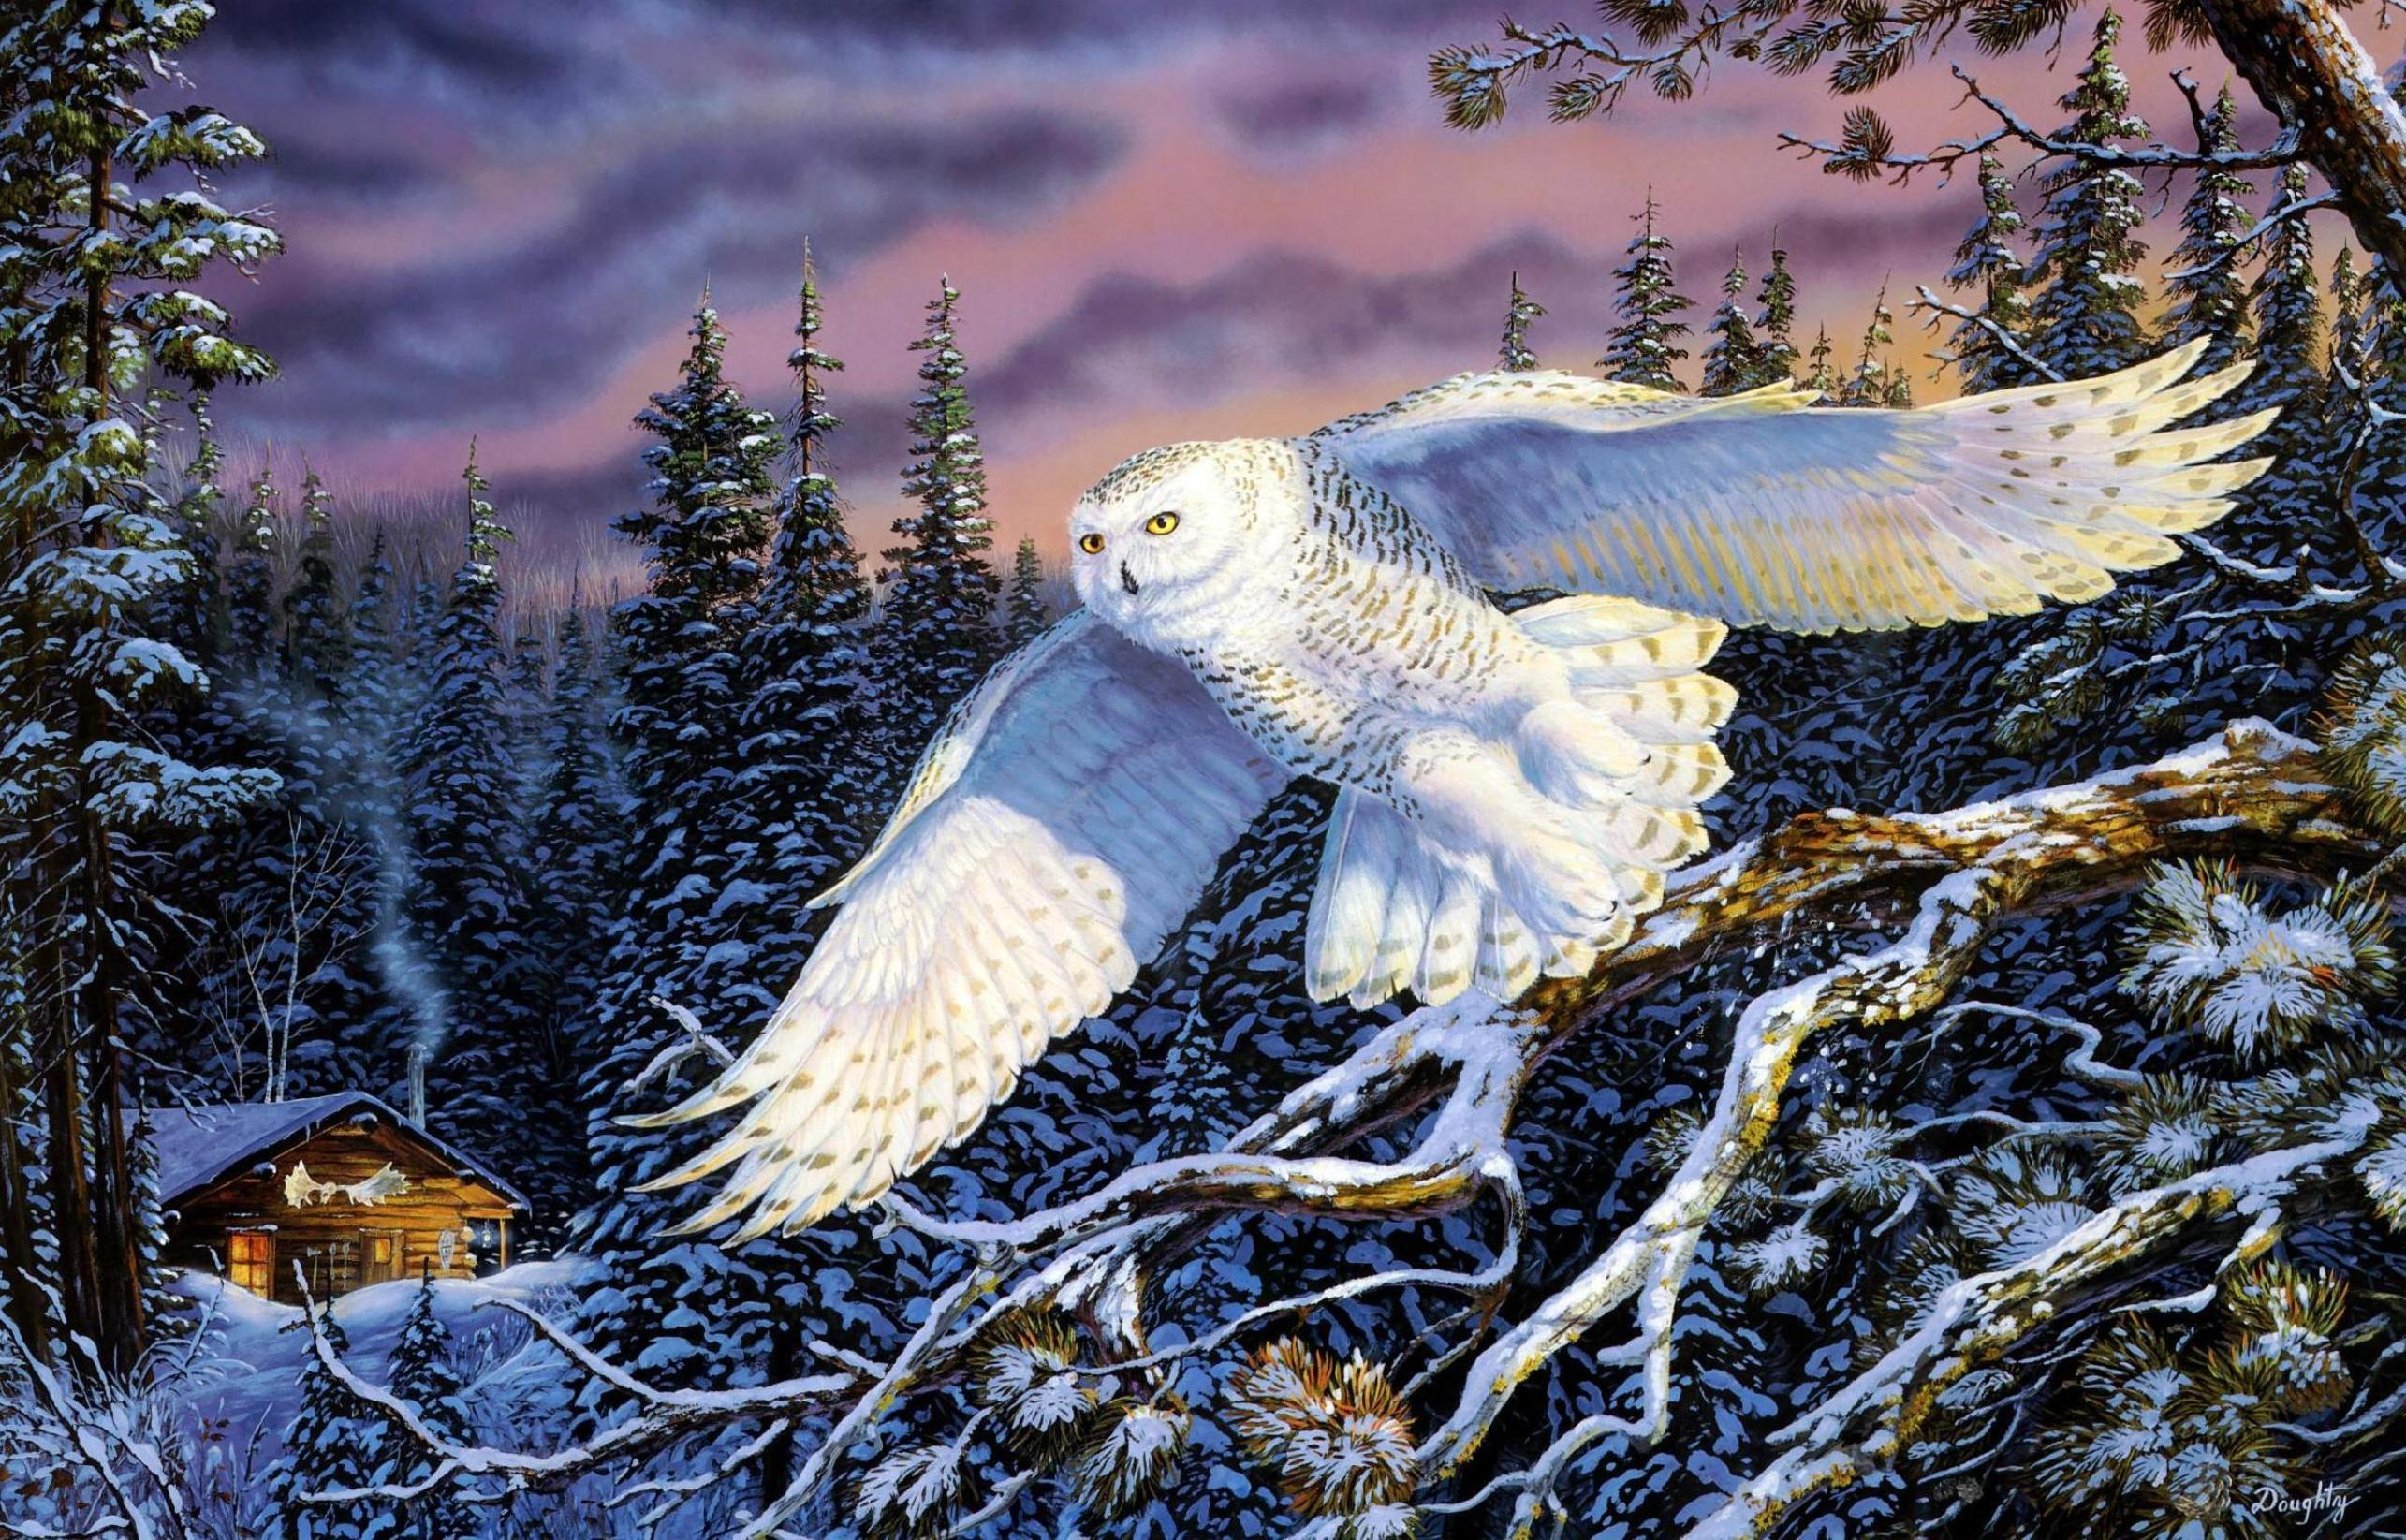 87 Snowy Owl HD Wallpapers | Backgrounds - Wallpaper Abyss